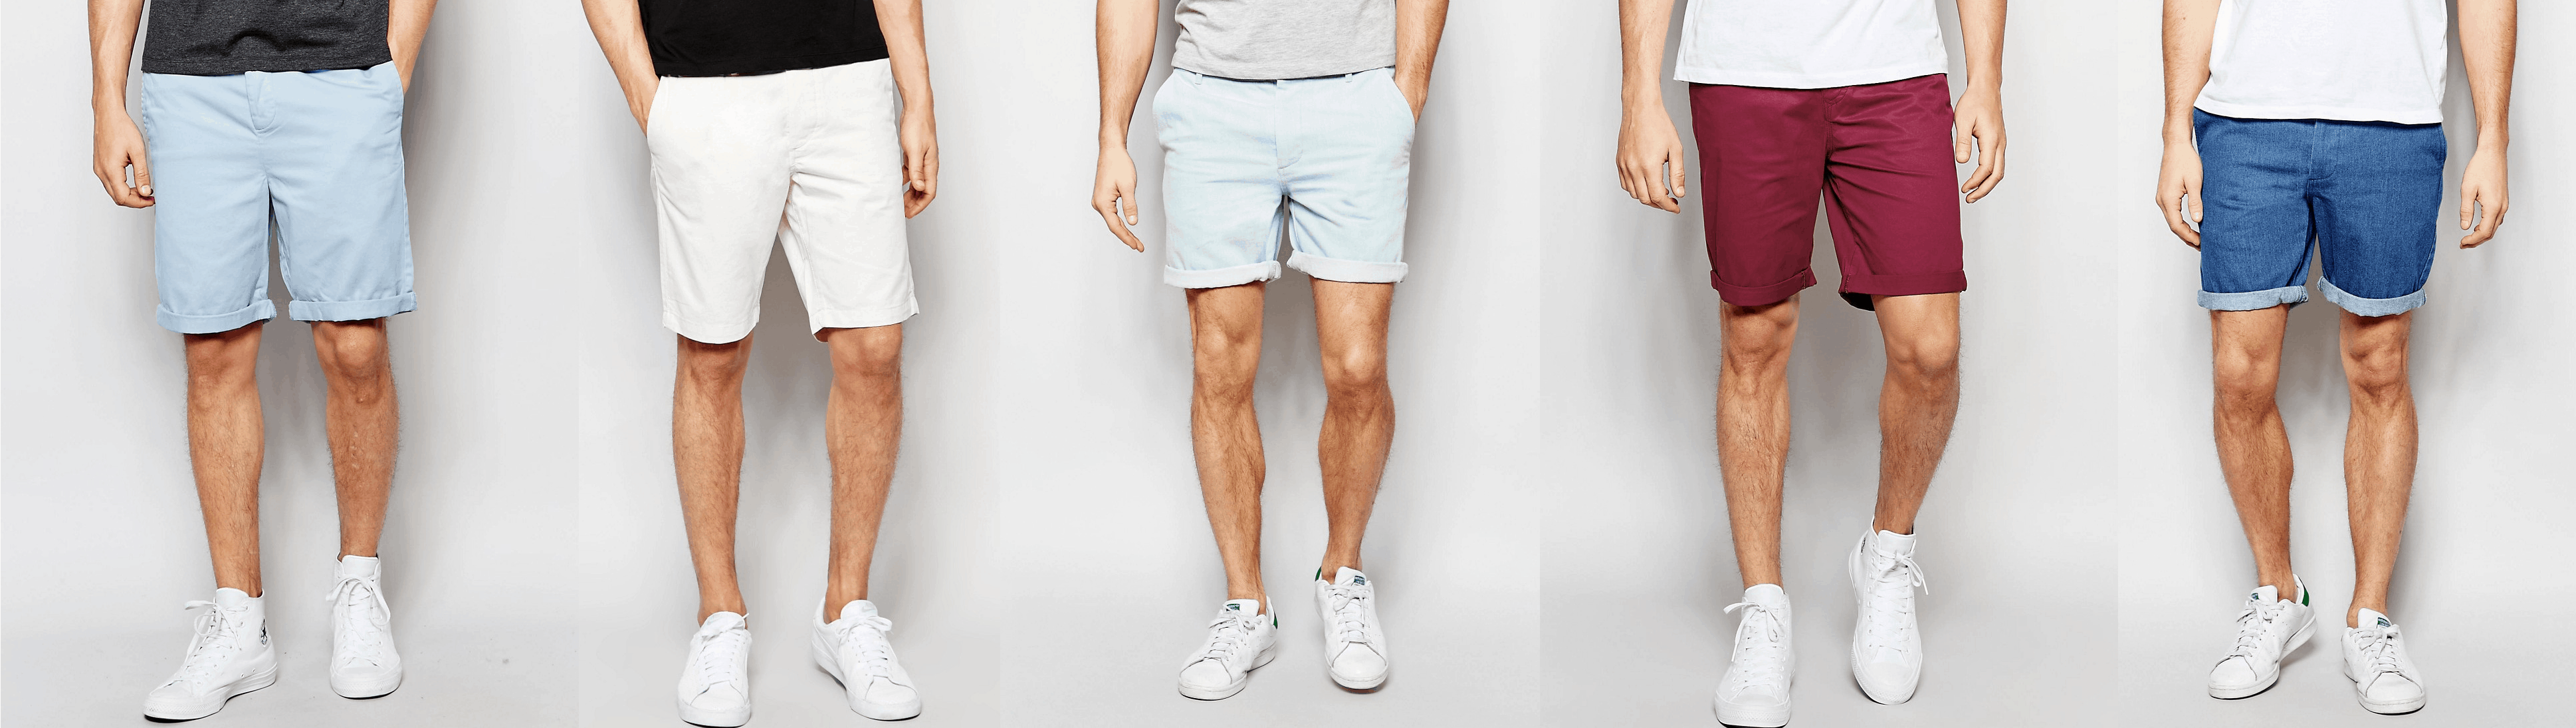 right length for men's shorts